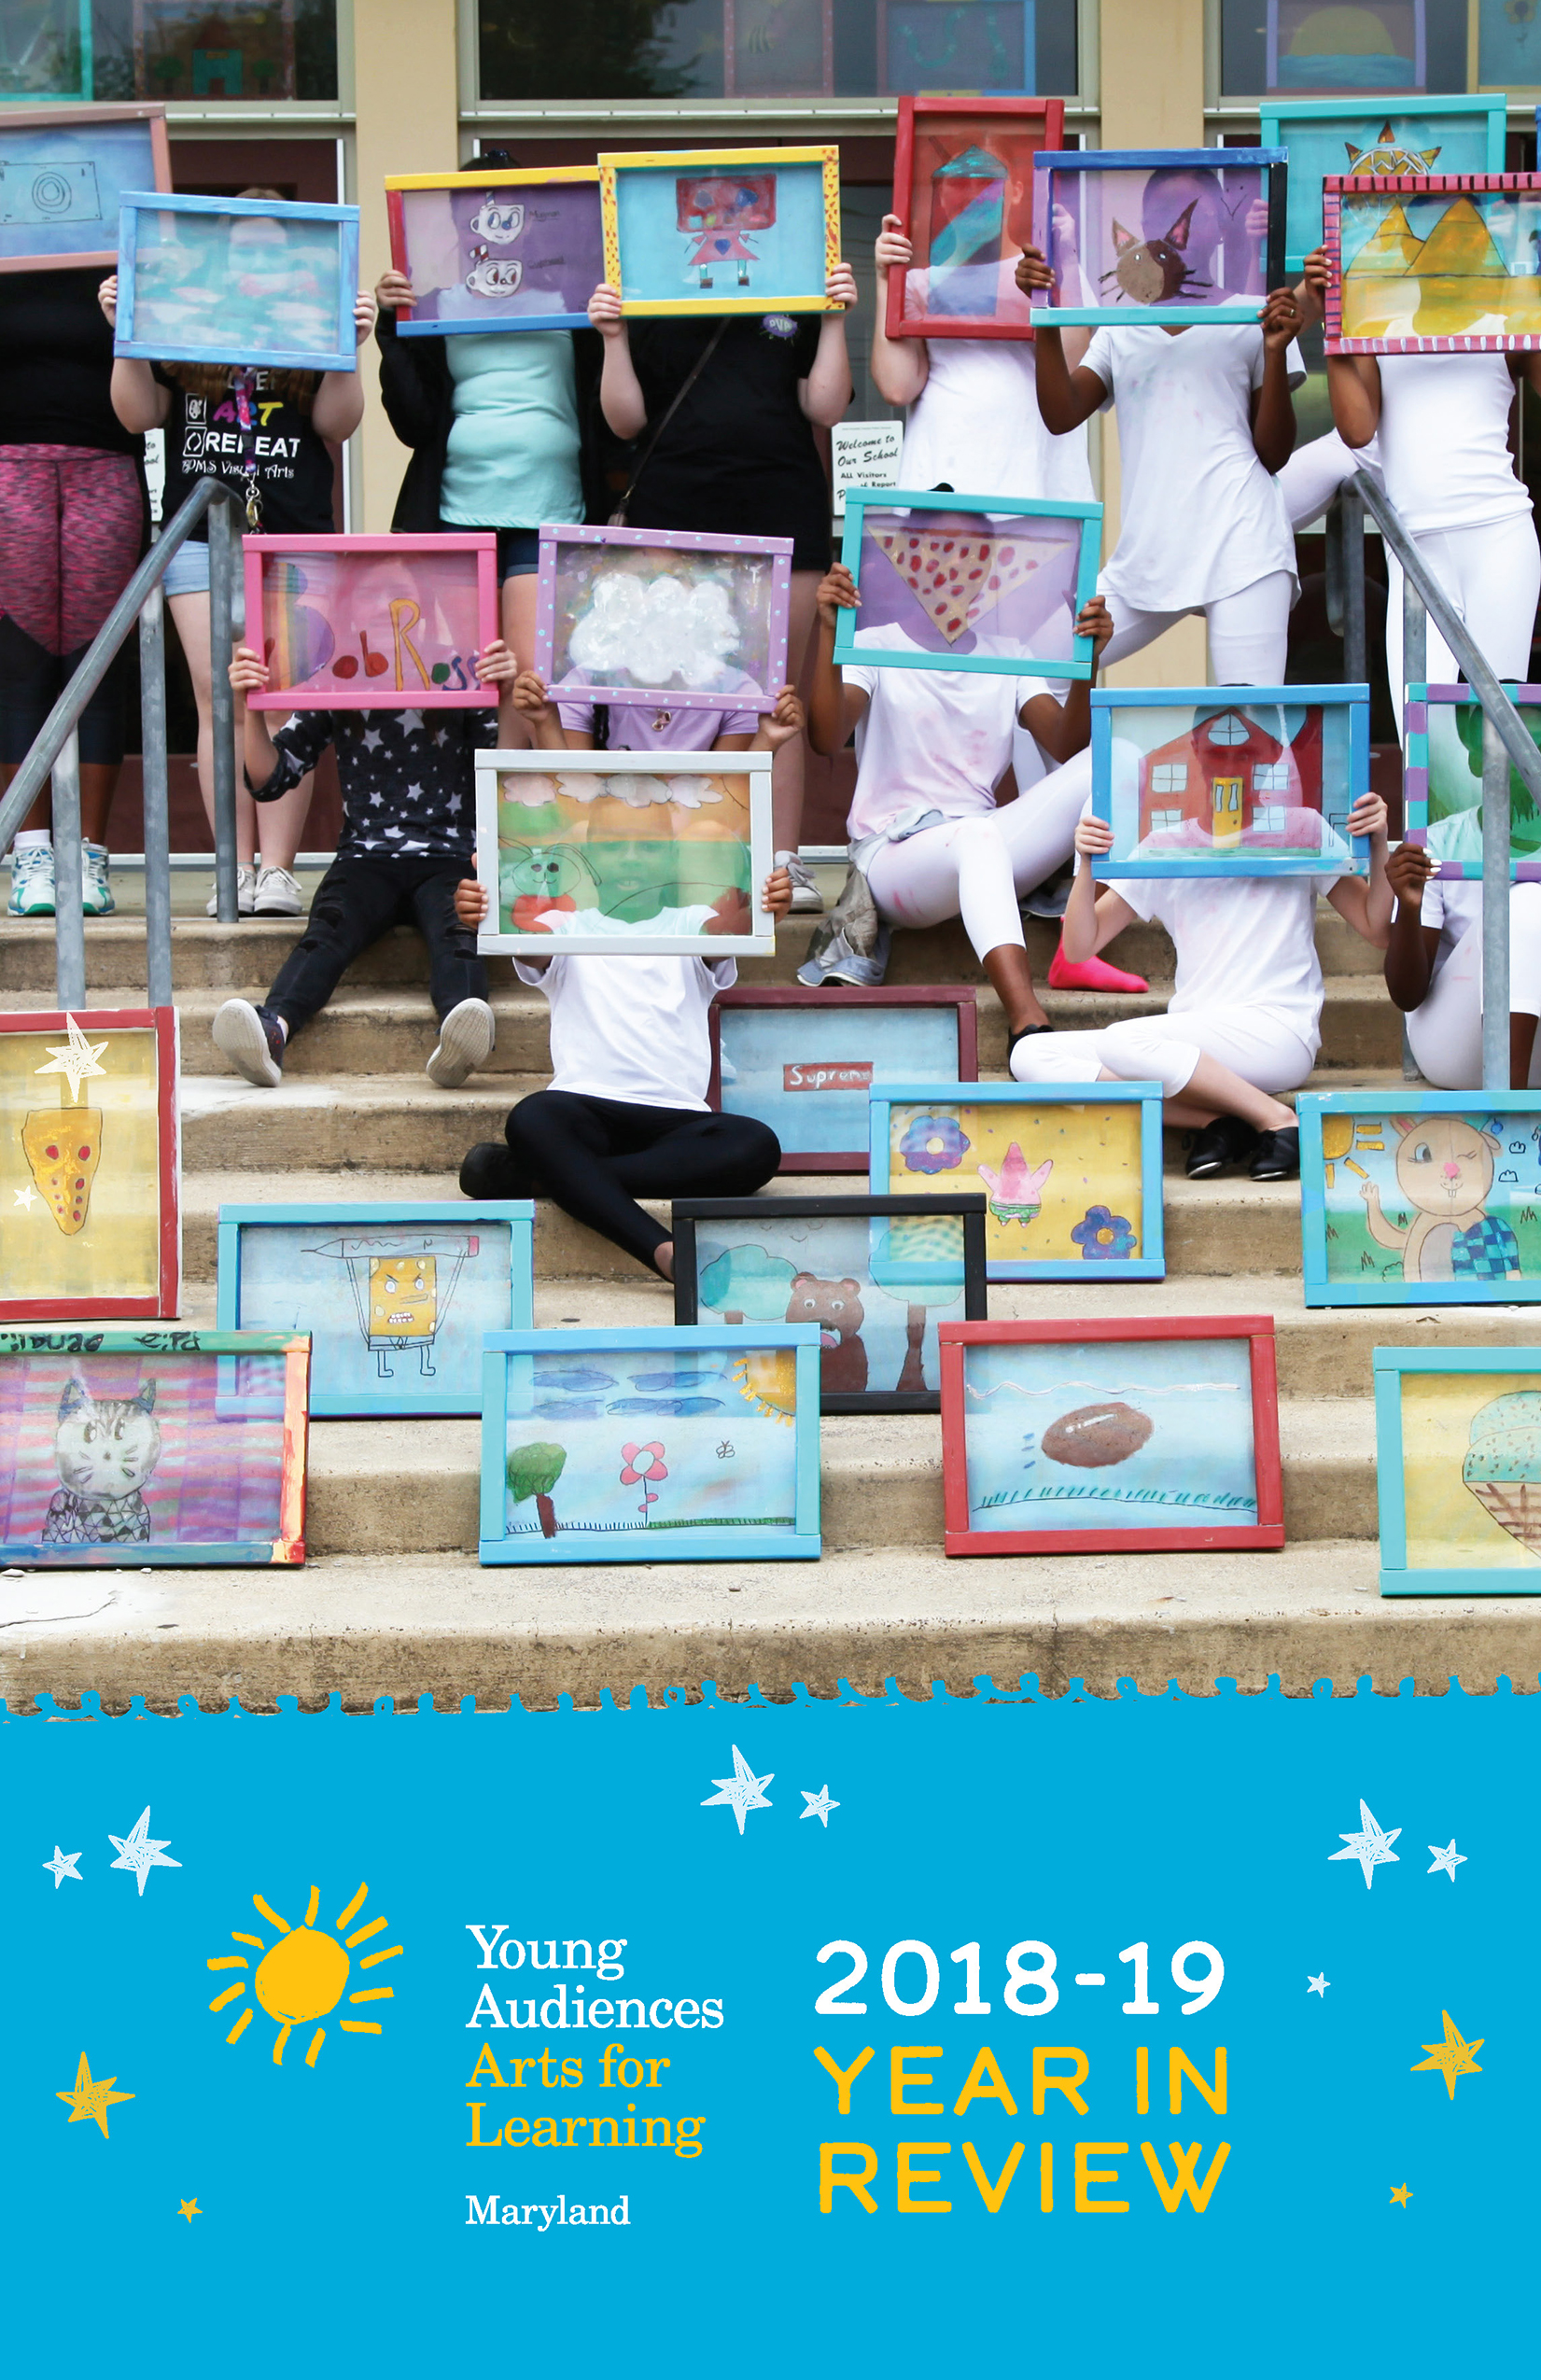 Young Audiences Arts for Learning 2018-19 Annual Report